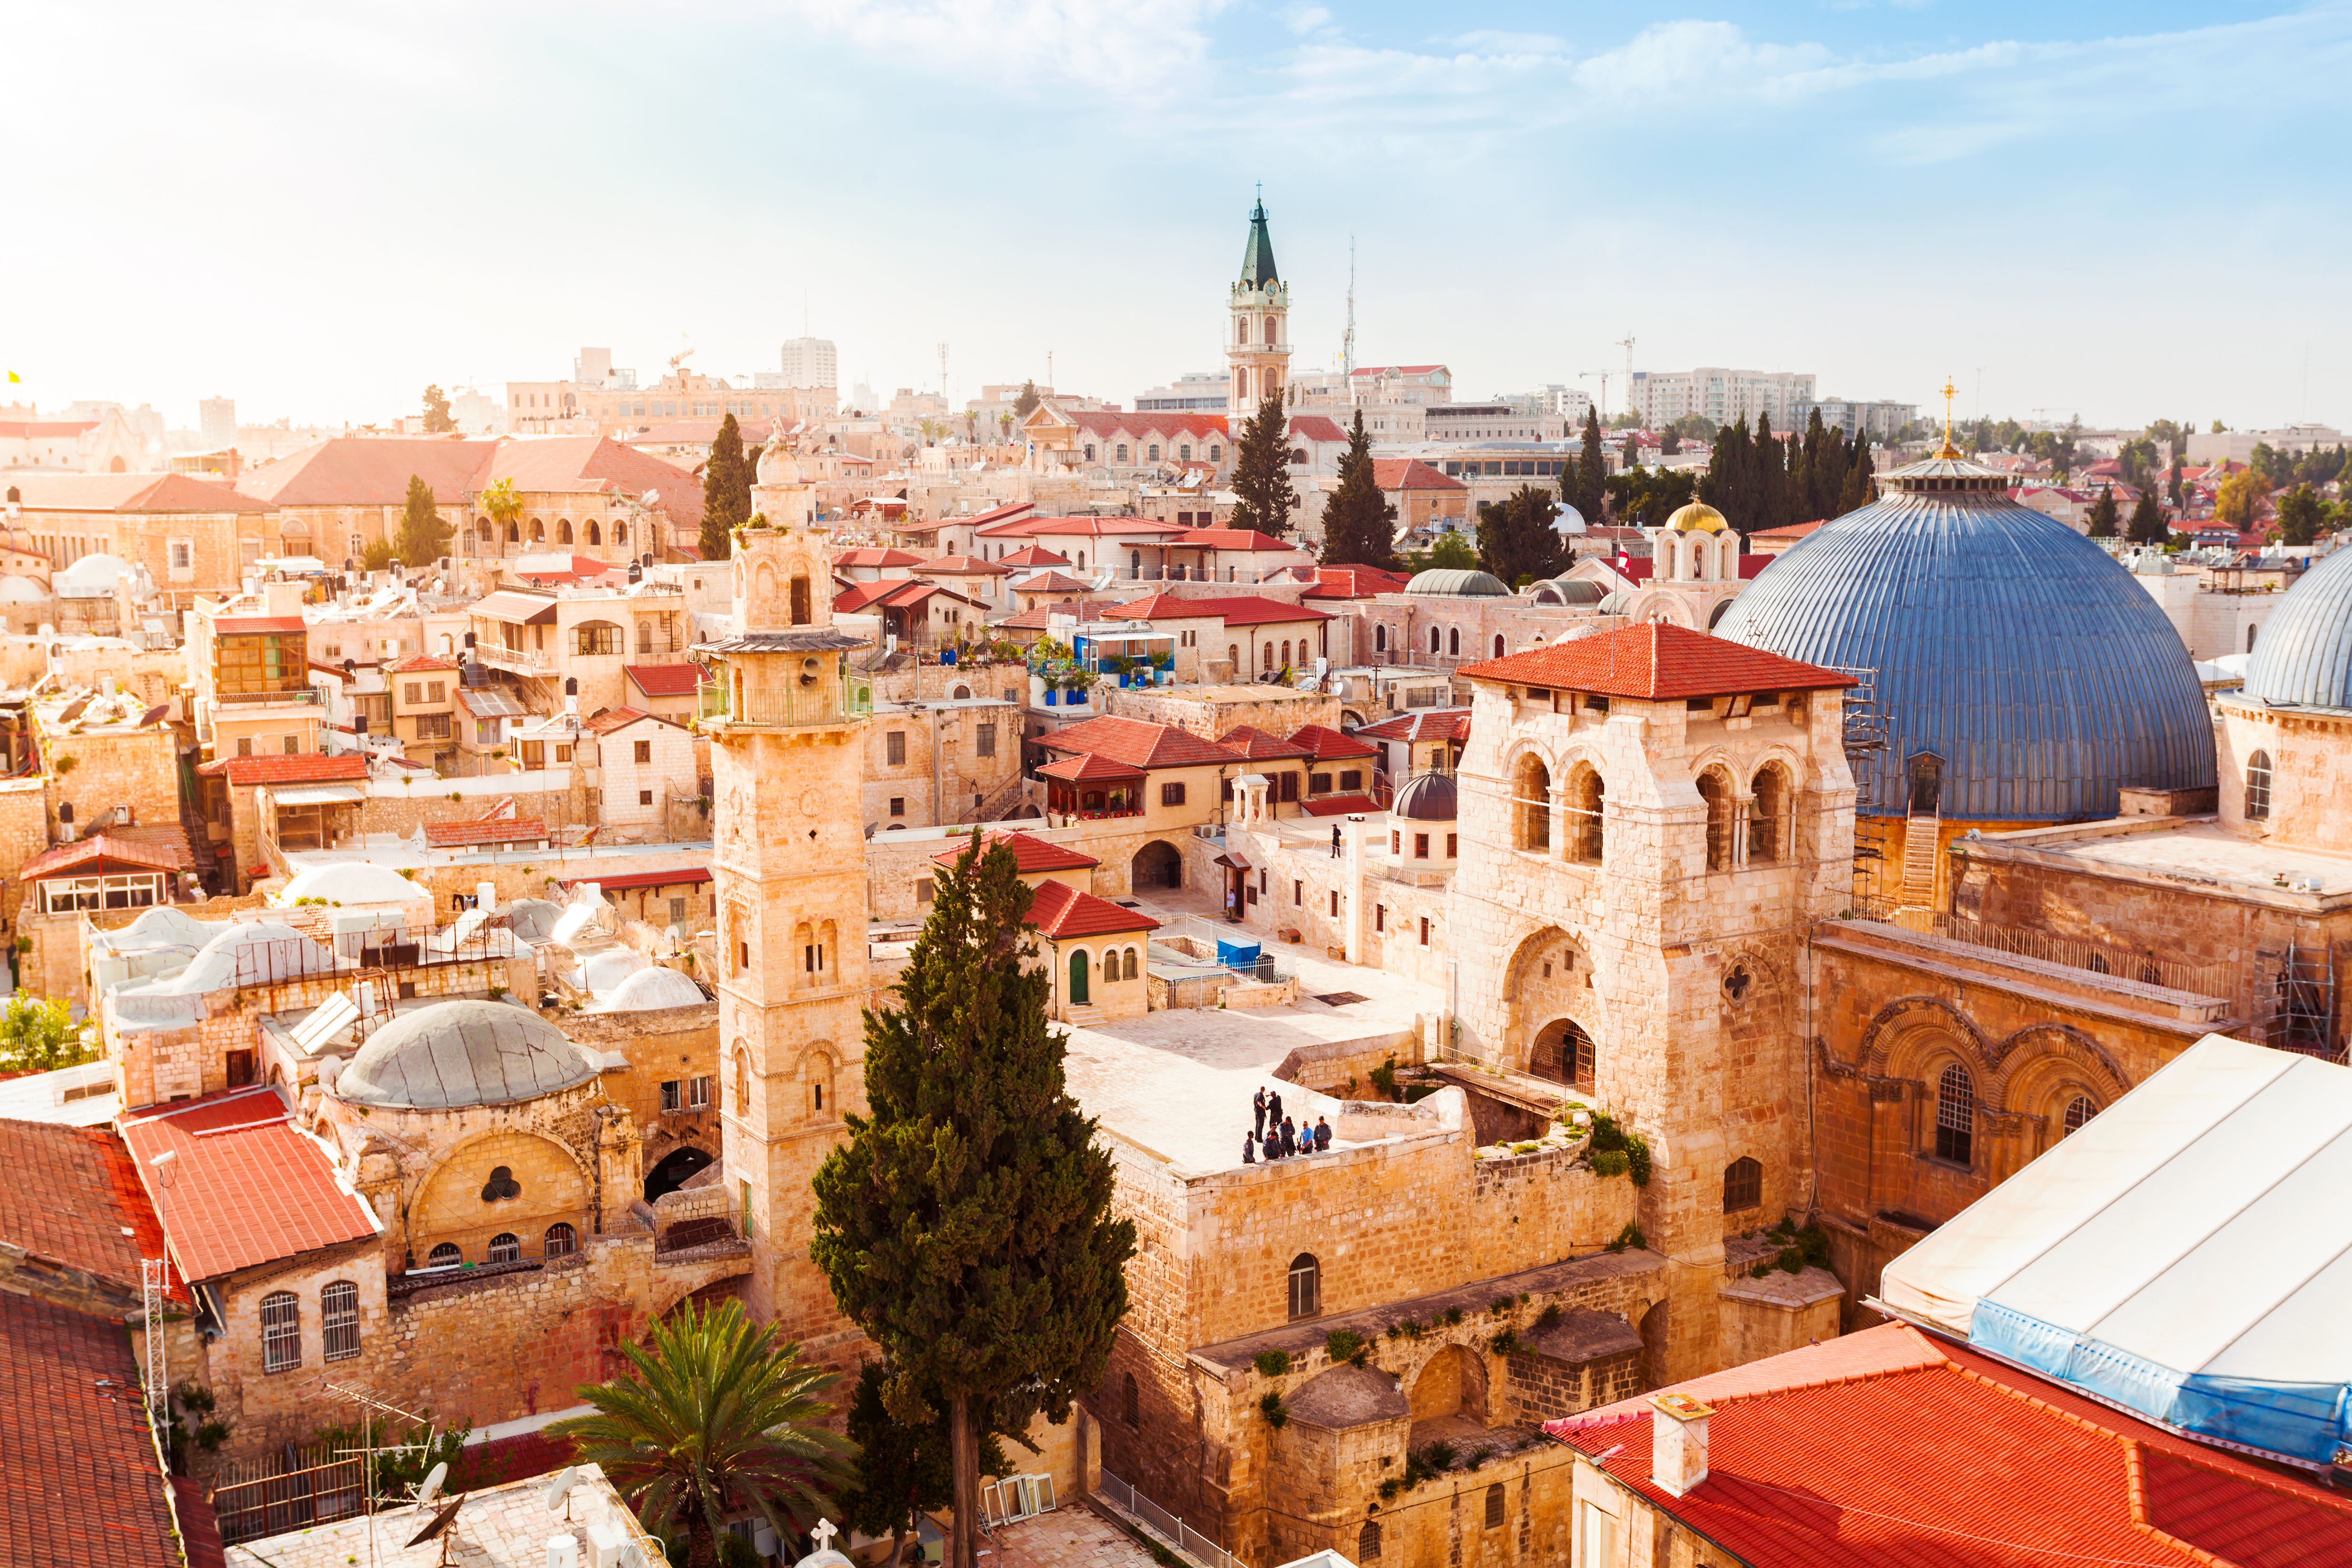 The Old City Jerusalem Skyline and the Church of the Holy Sepulchre.